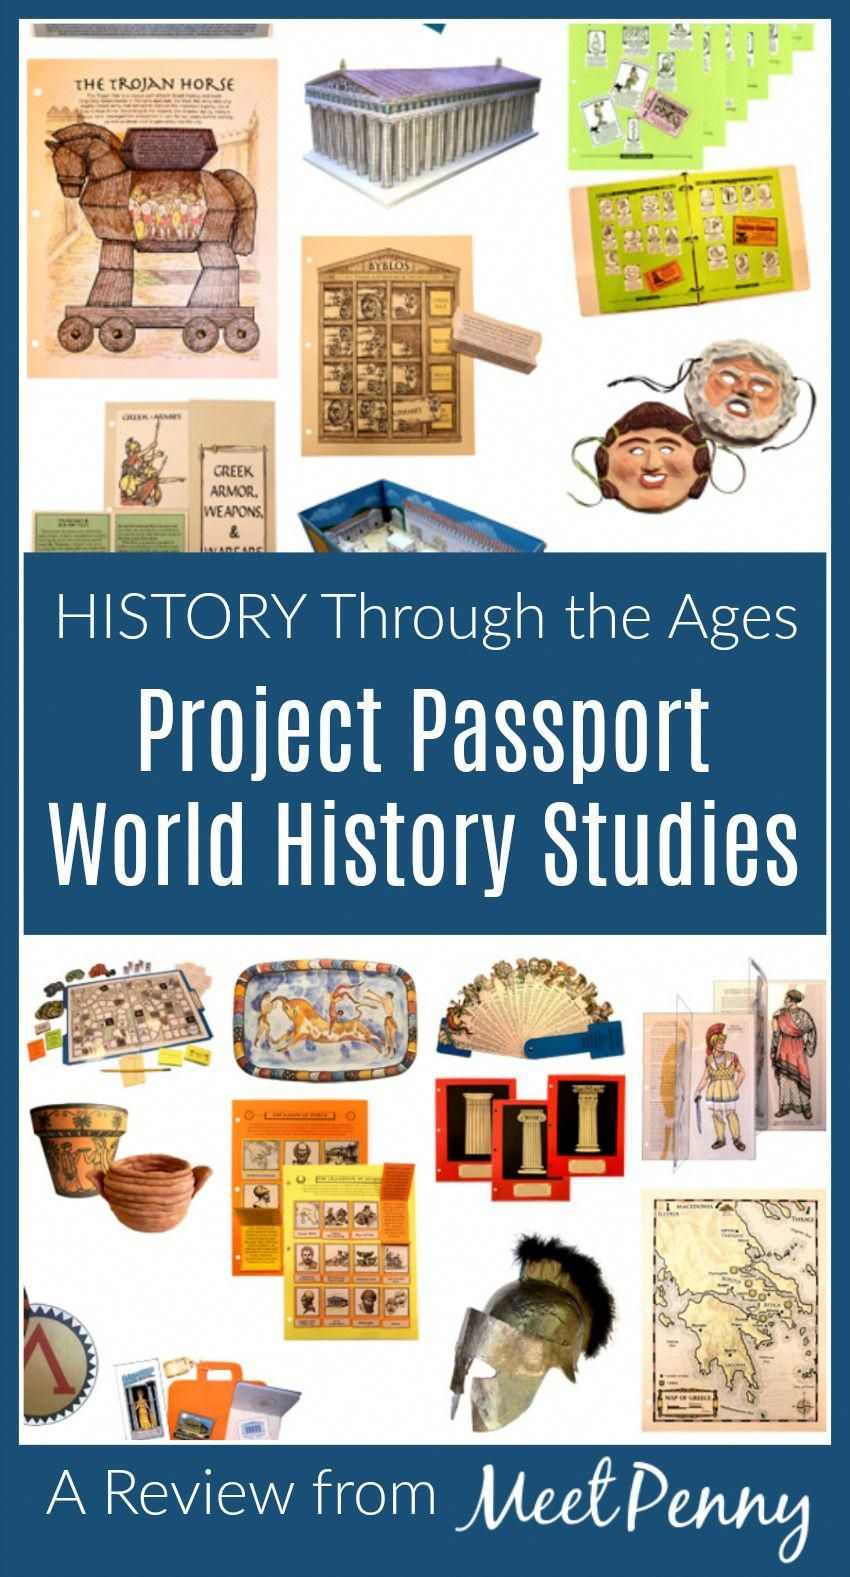 Home School in the Woods offers a homeschool history curriculum providing a handson projectbased world history curriculum to keep learning fun